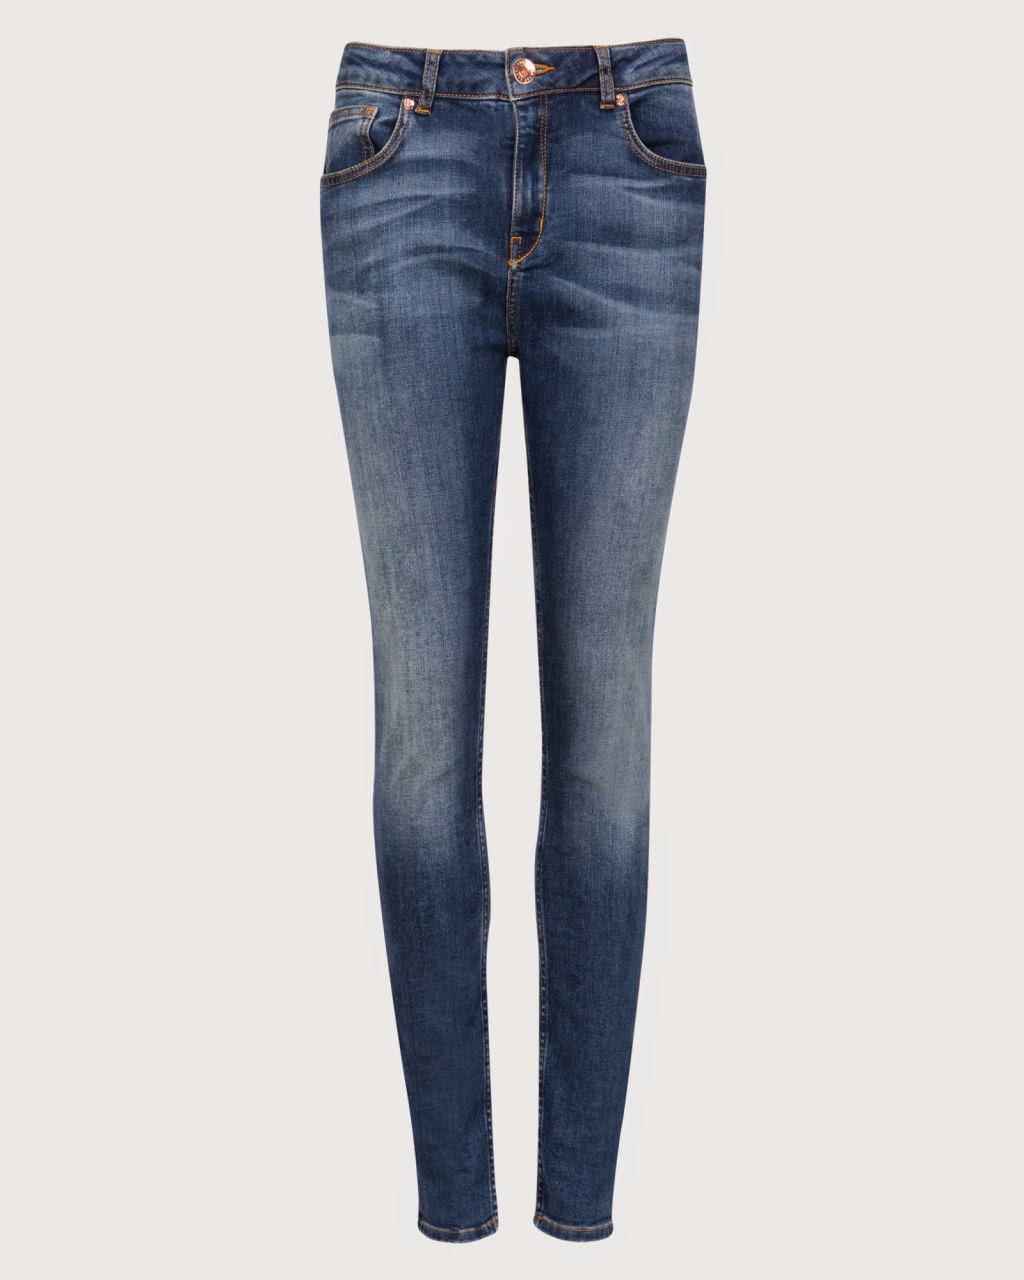 ted baker skinny jeans, ted baker high waisted jeans,